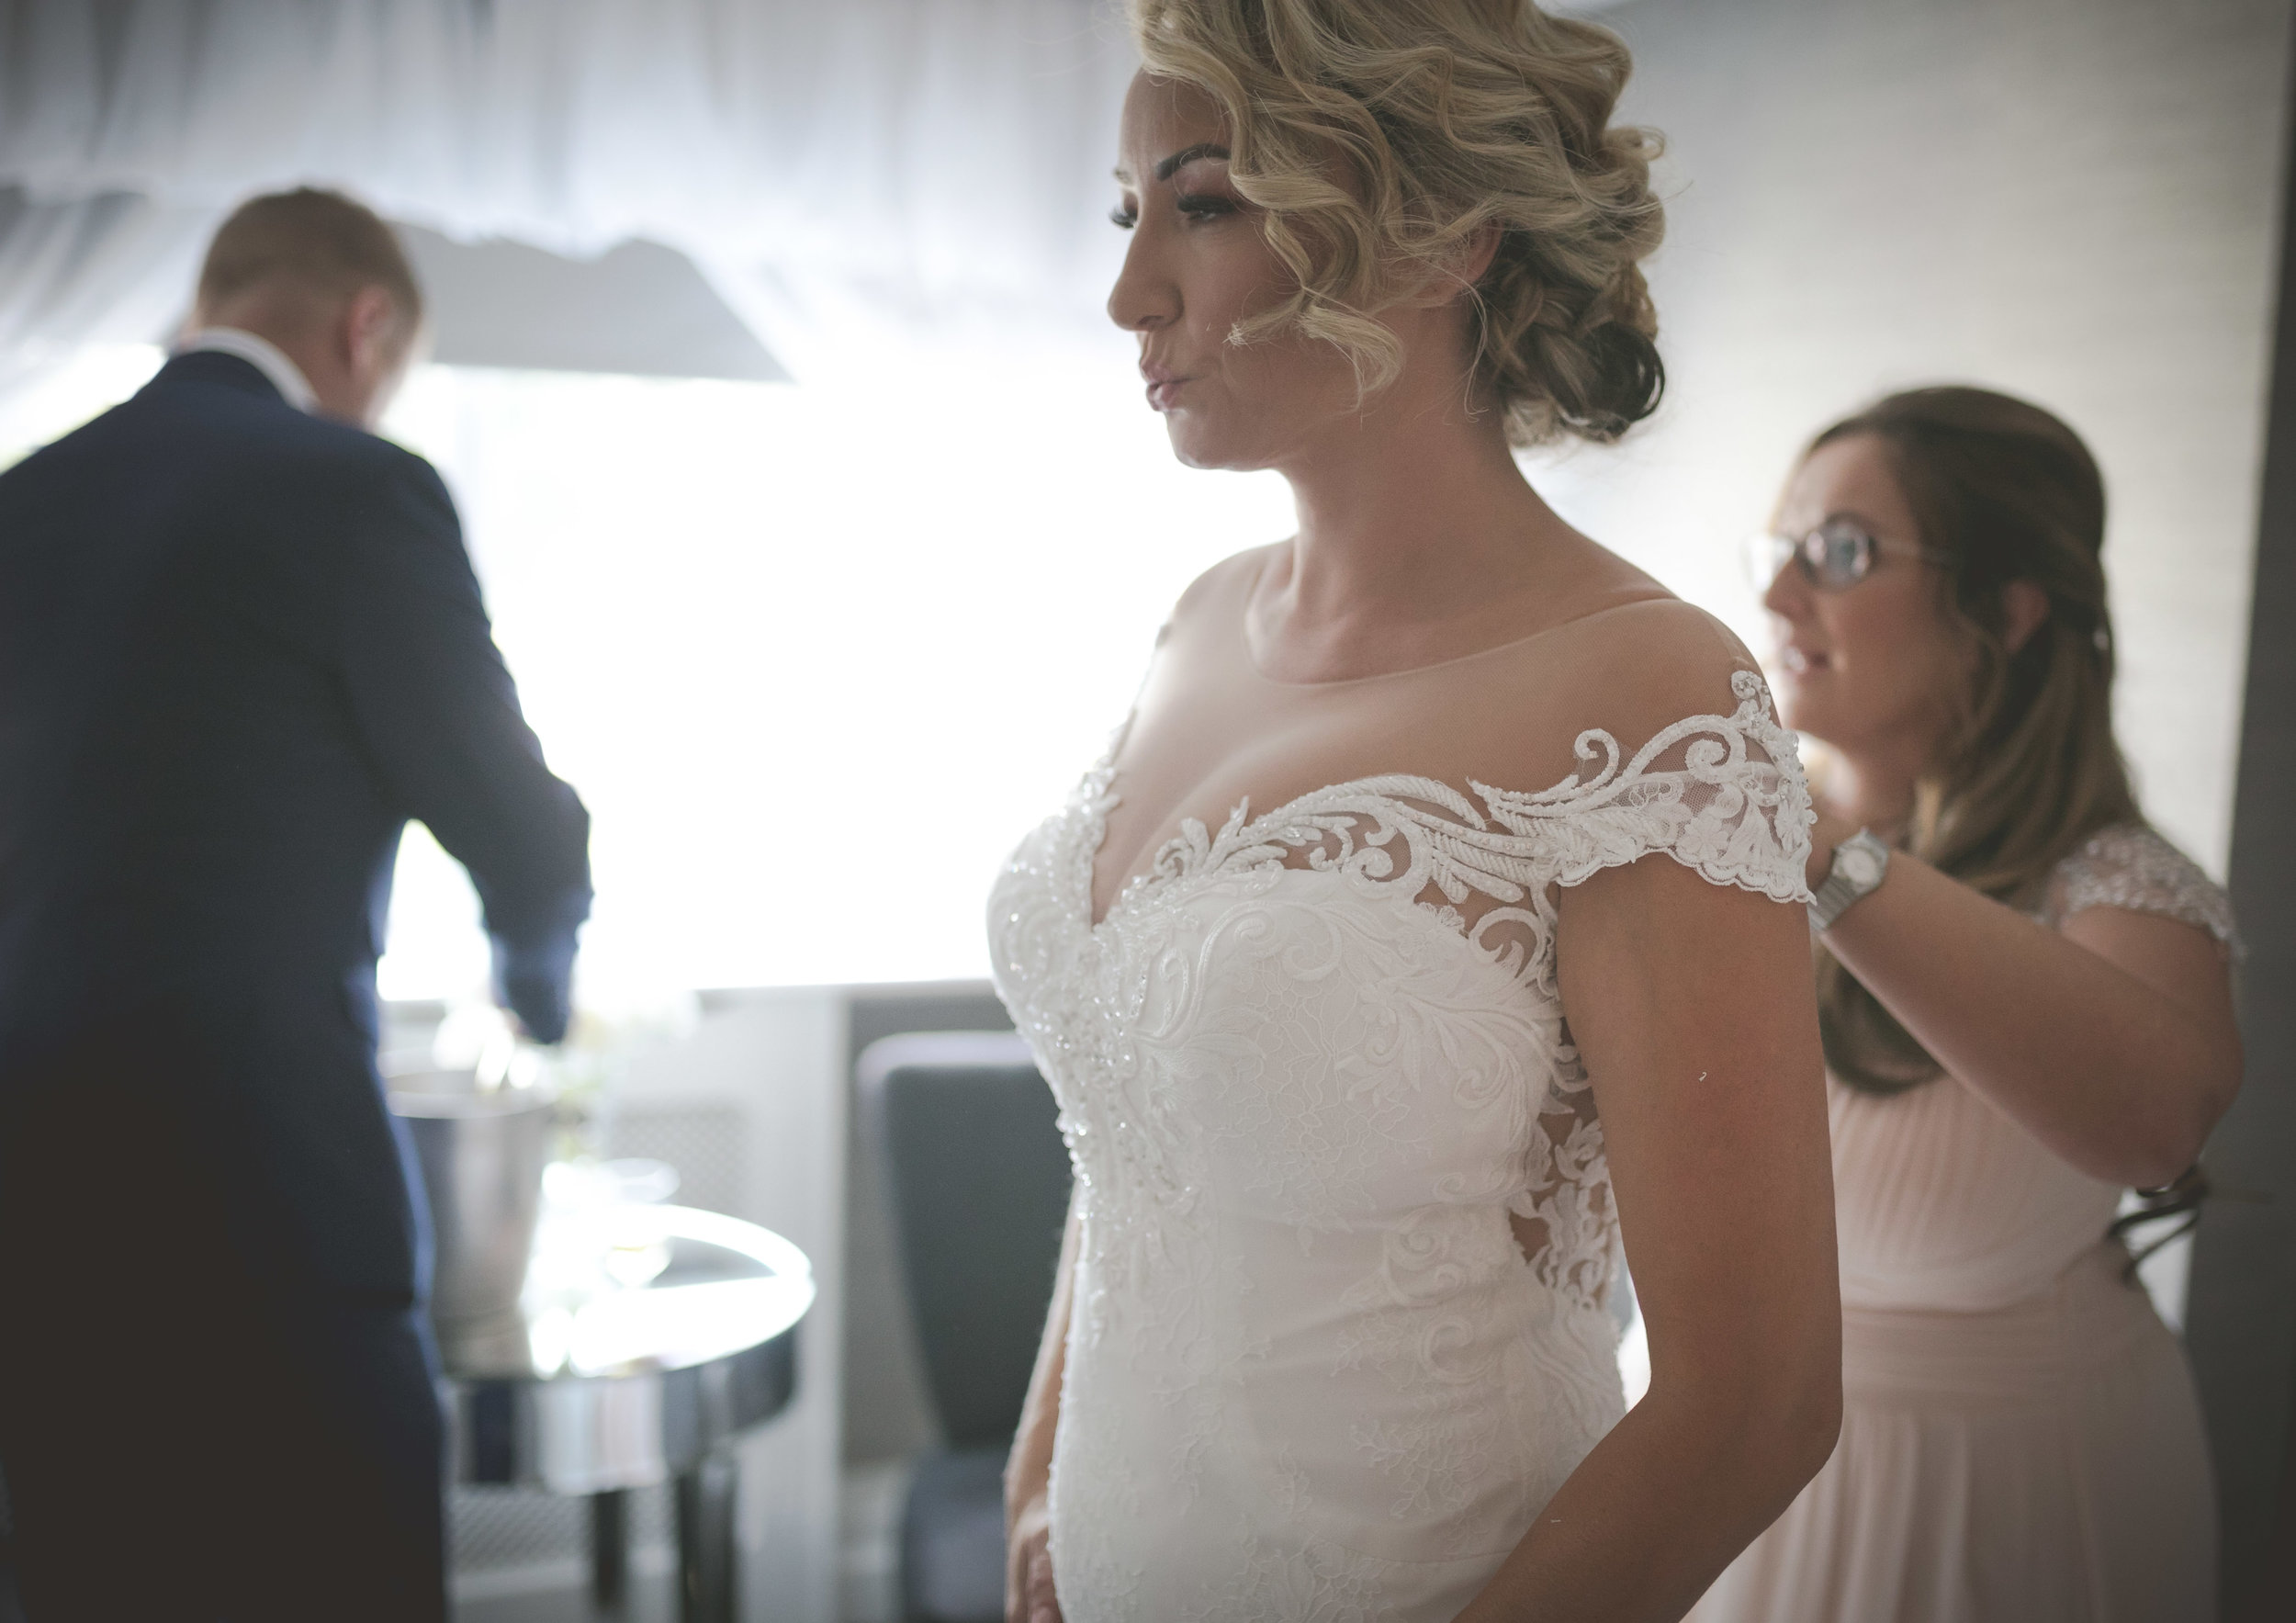 Wedding+photos+at+st+georges (11 of 39).jpg